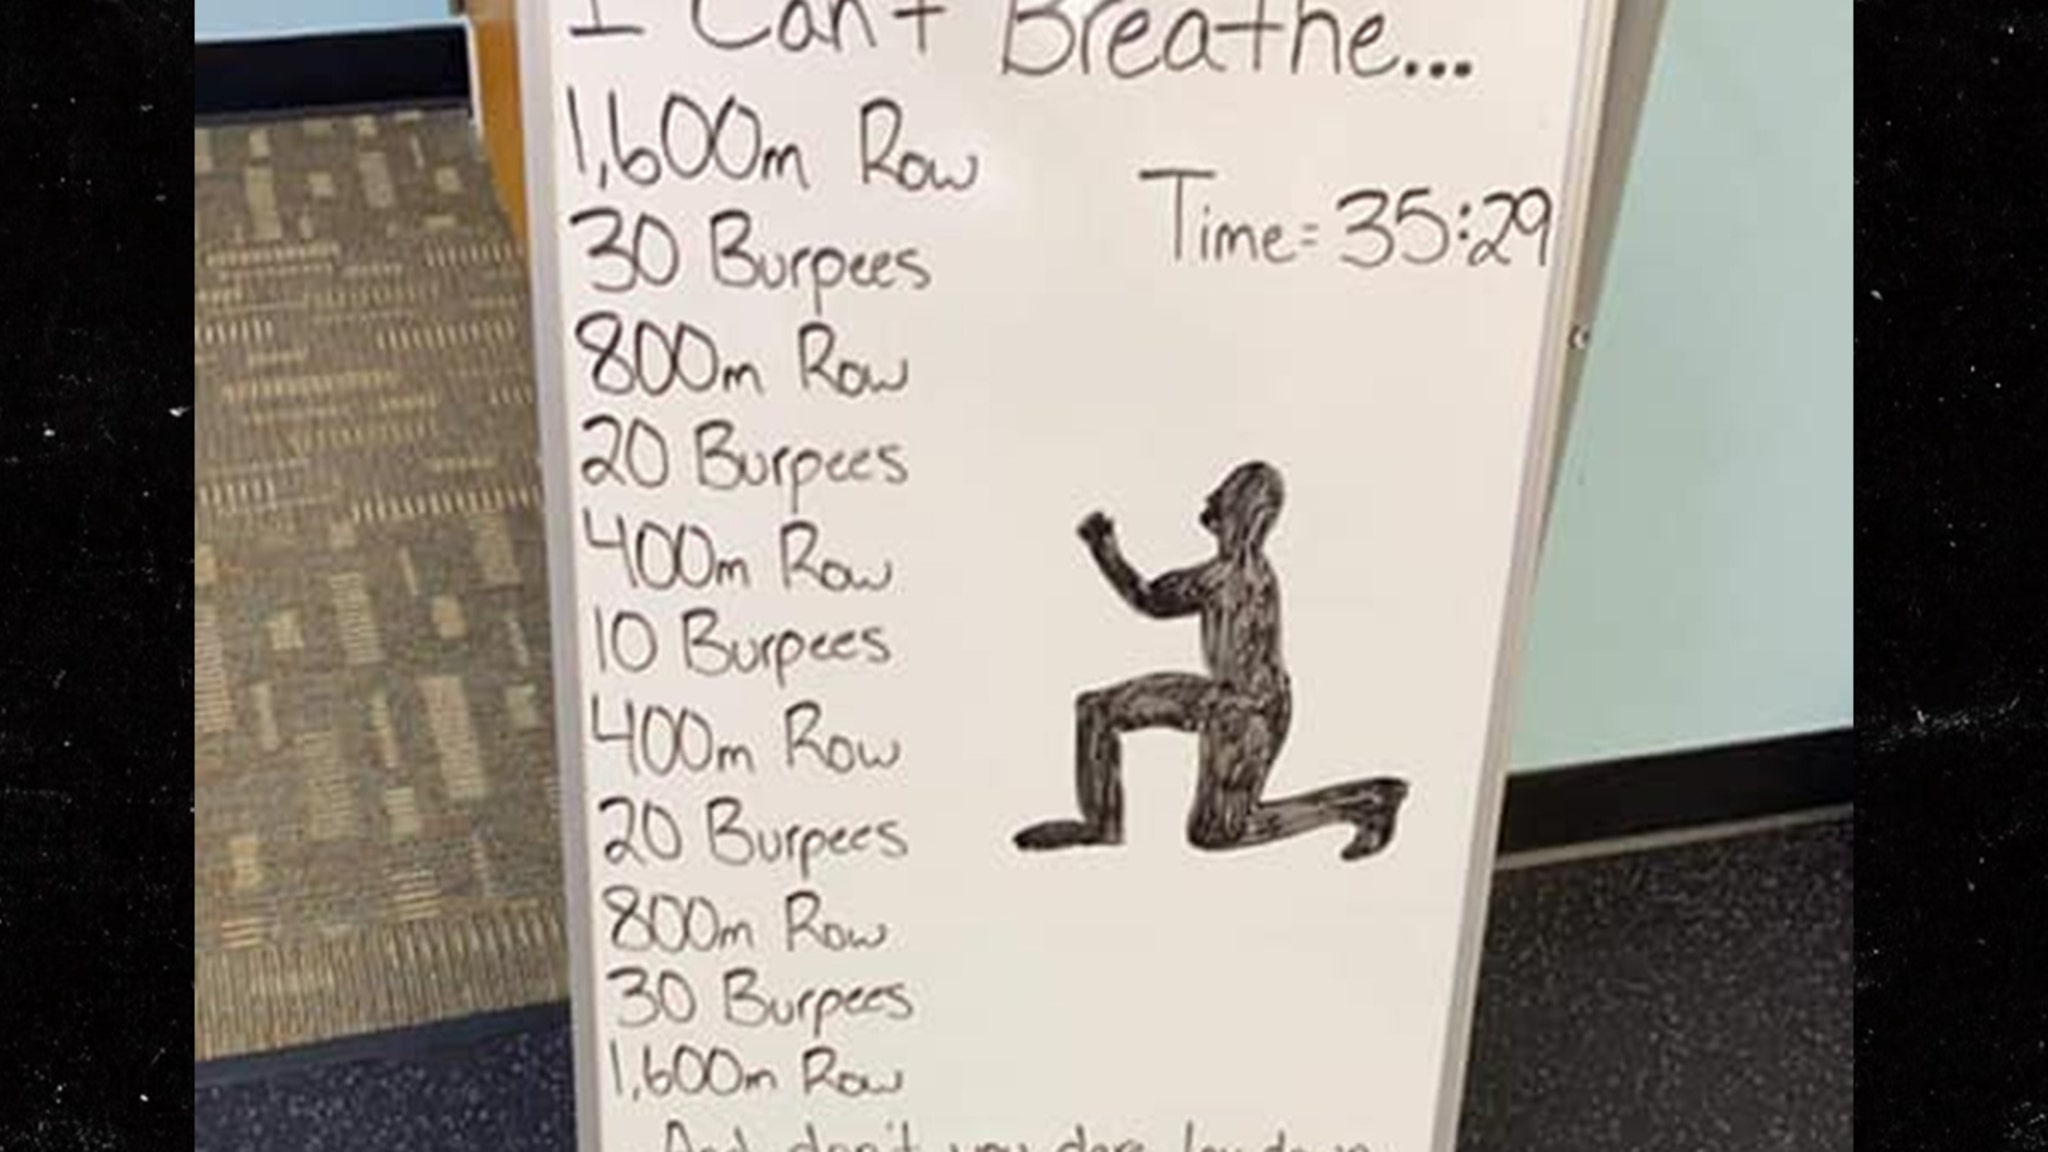 Wisconsin Gym Posts Offensive 'I Can't Breathe' Workout ... Owner Apologizes